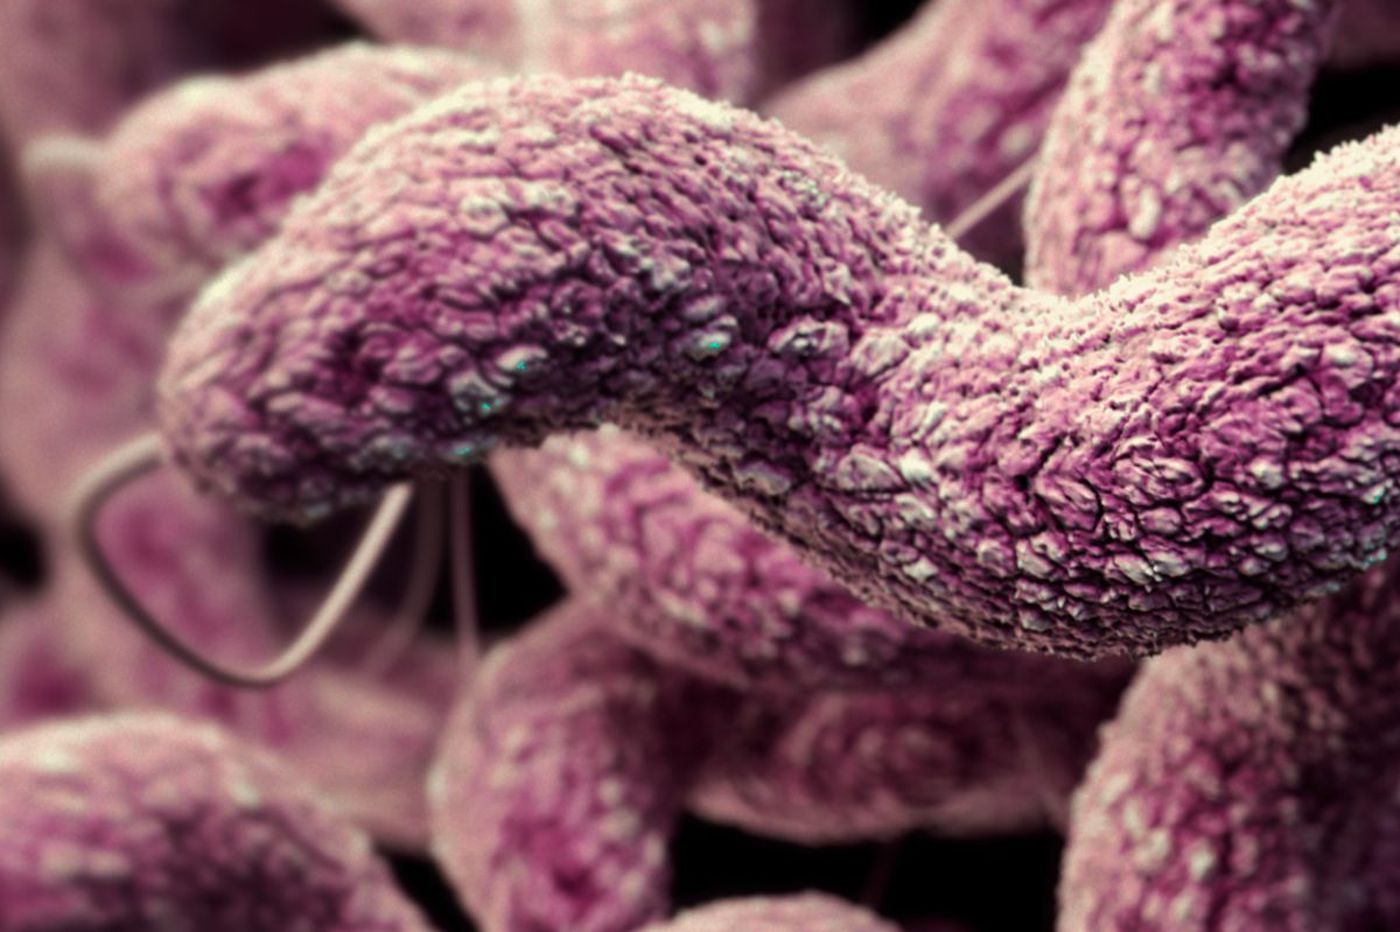 The world keeps using more antibiotics and it's making us sick